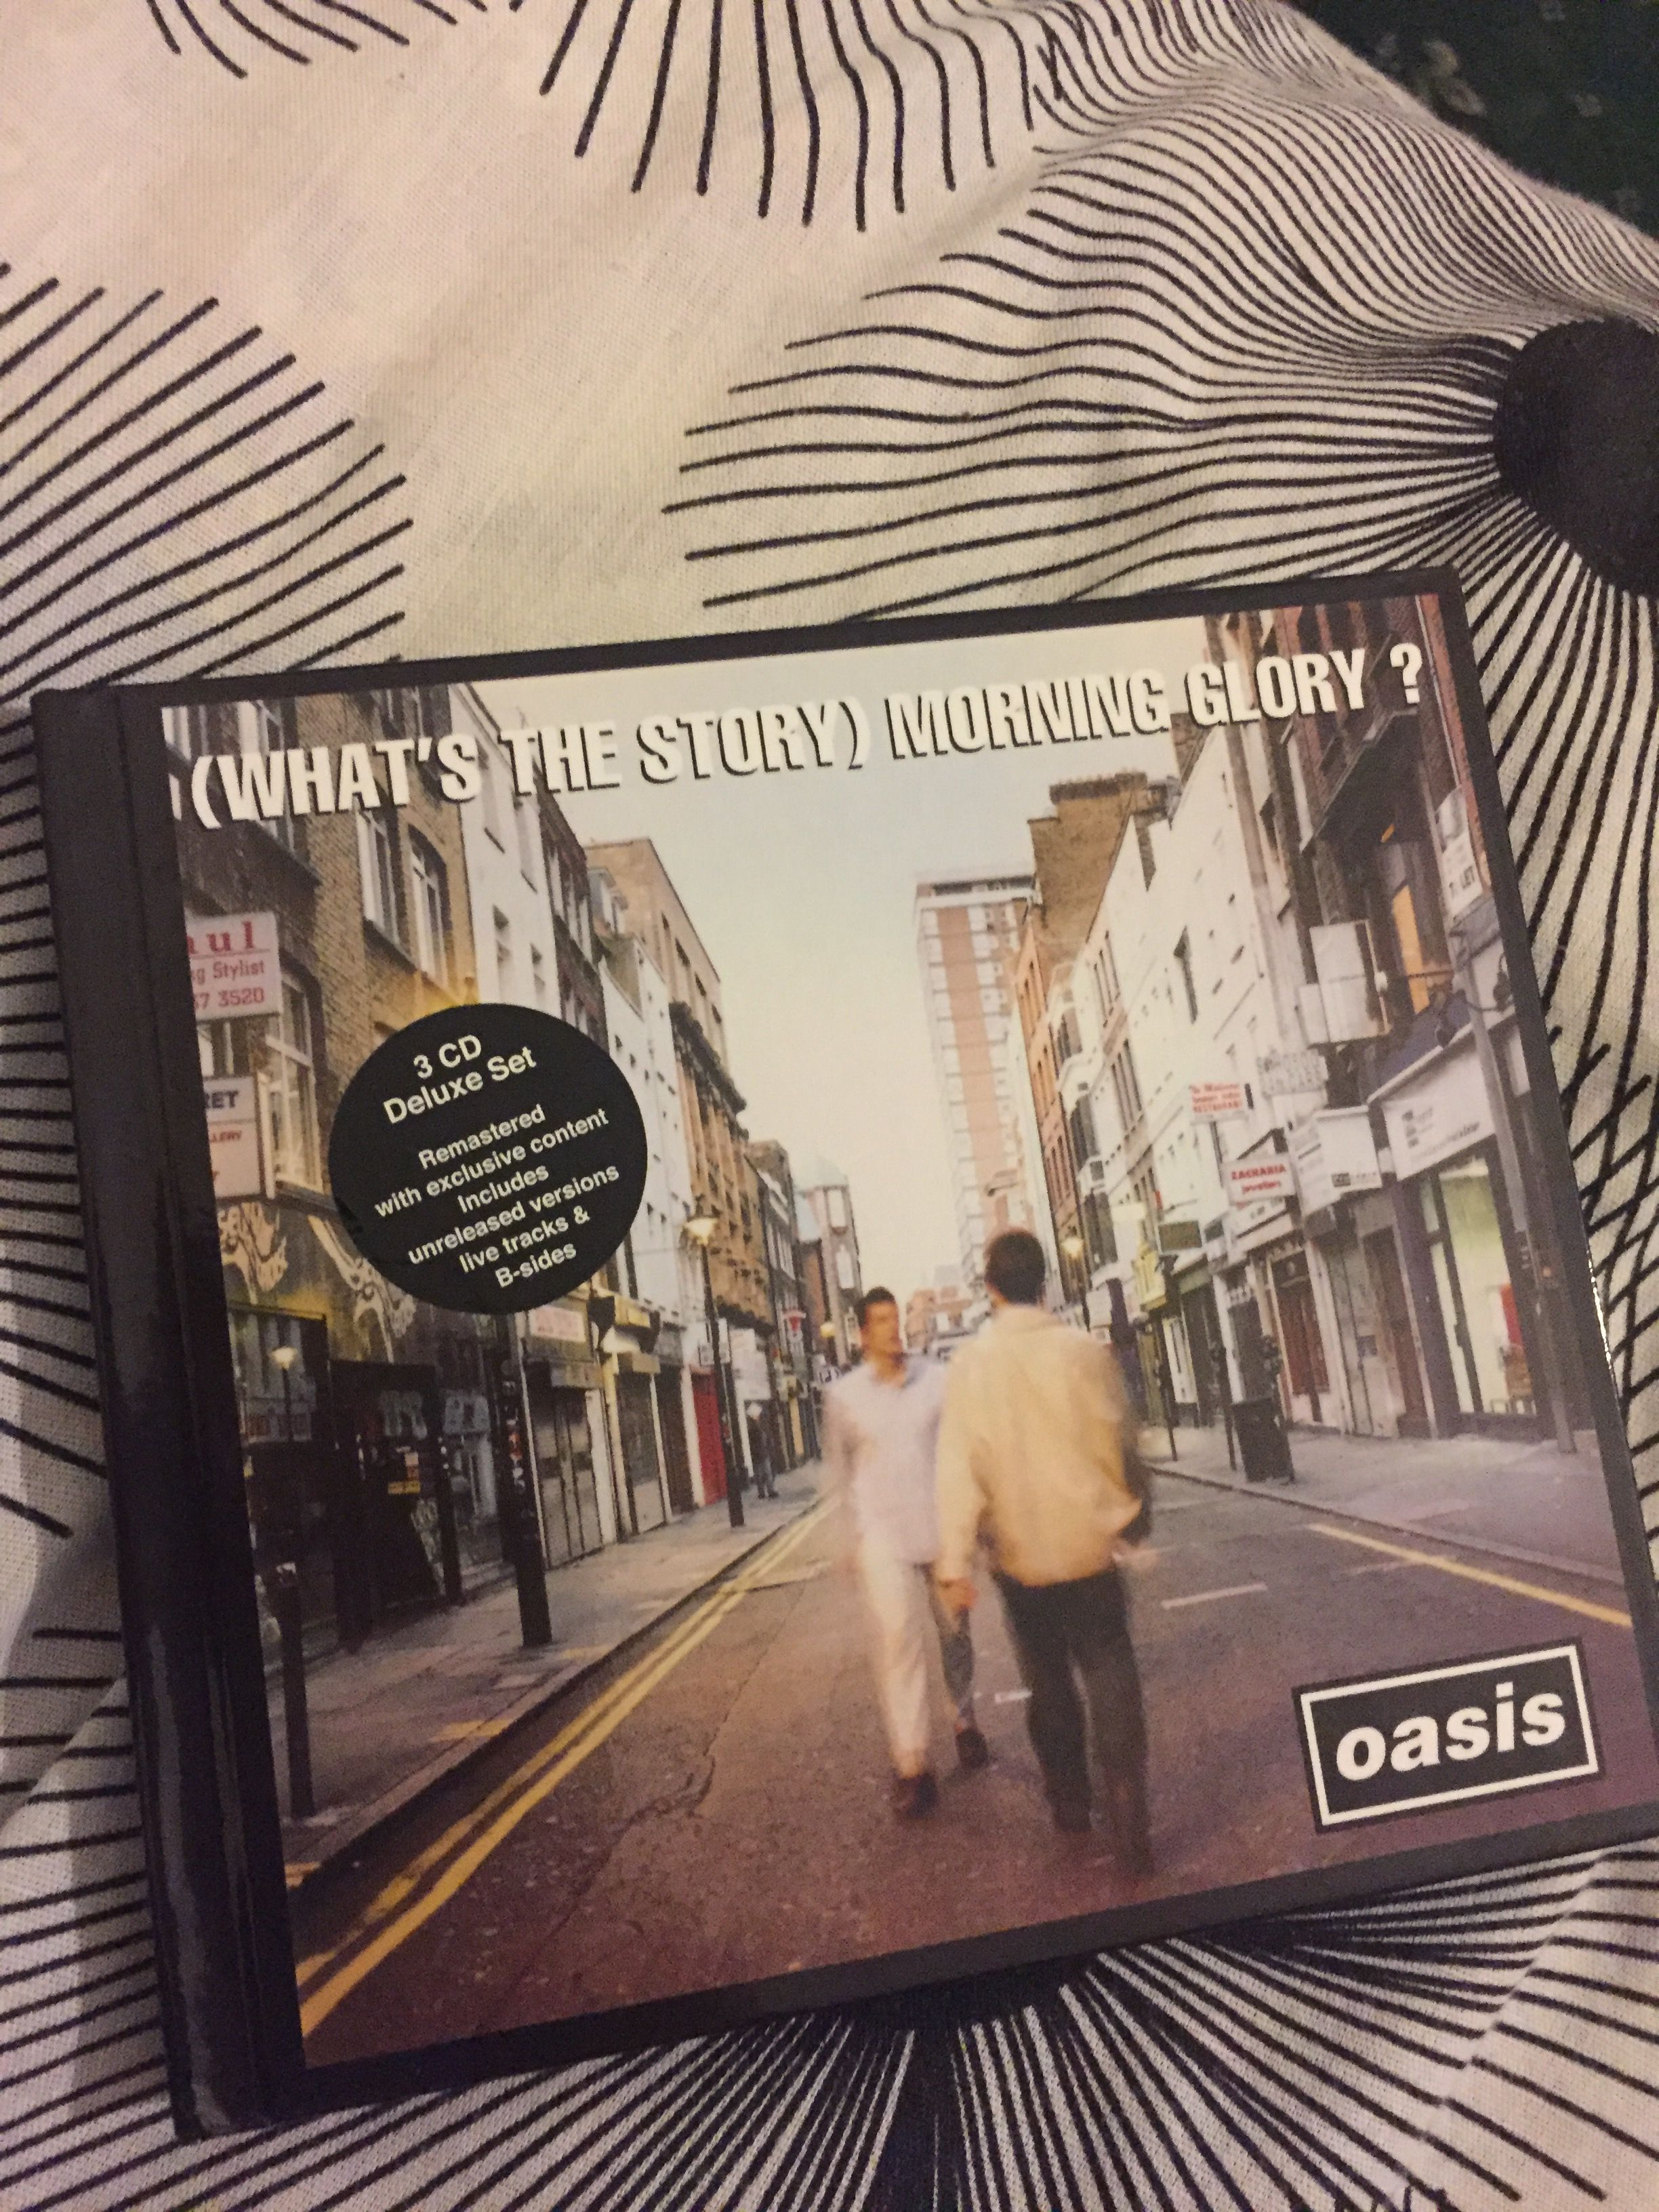 Oasis - (What's the Story) Morning Glory? Deluxe Edition on CD | My